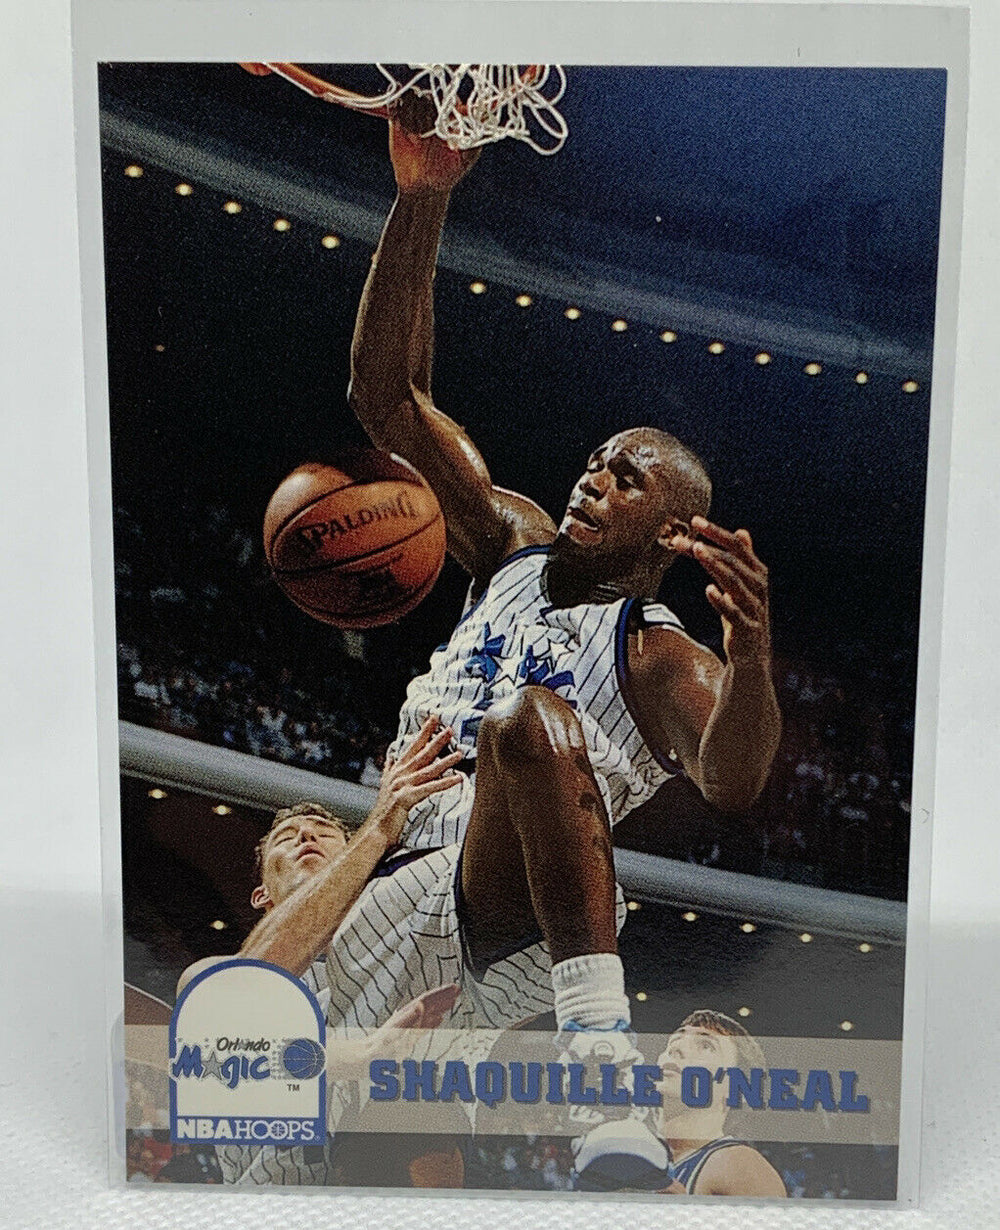 Shaquille O'Neal 1993 1994 Hoops Series Mint Card #155